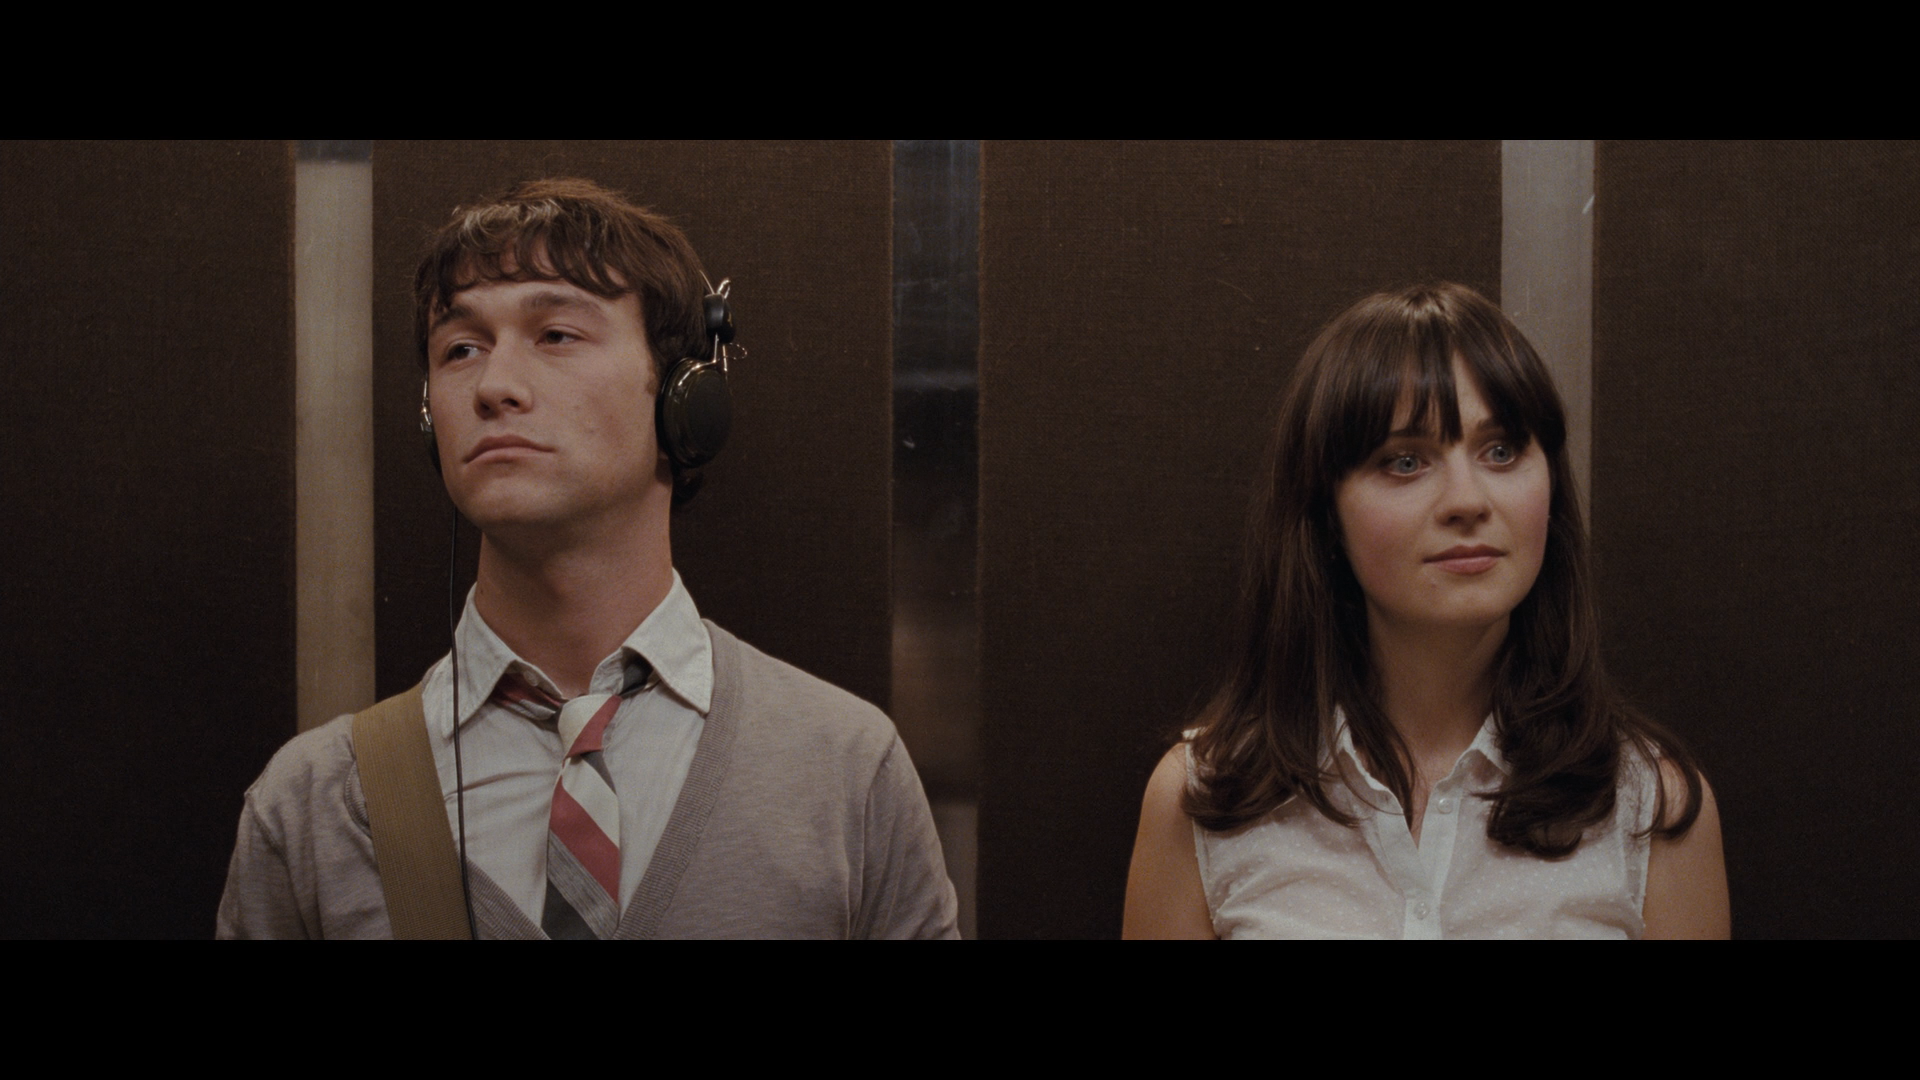 500 days of summer review 500 days of summer is a wildly likable film that actually delivers on some originality marc webb, in his impressive directorial debut shows us an admirable.